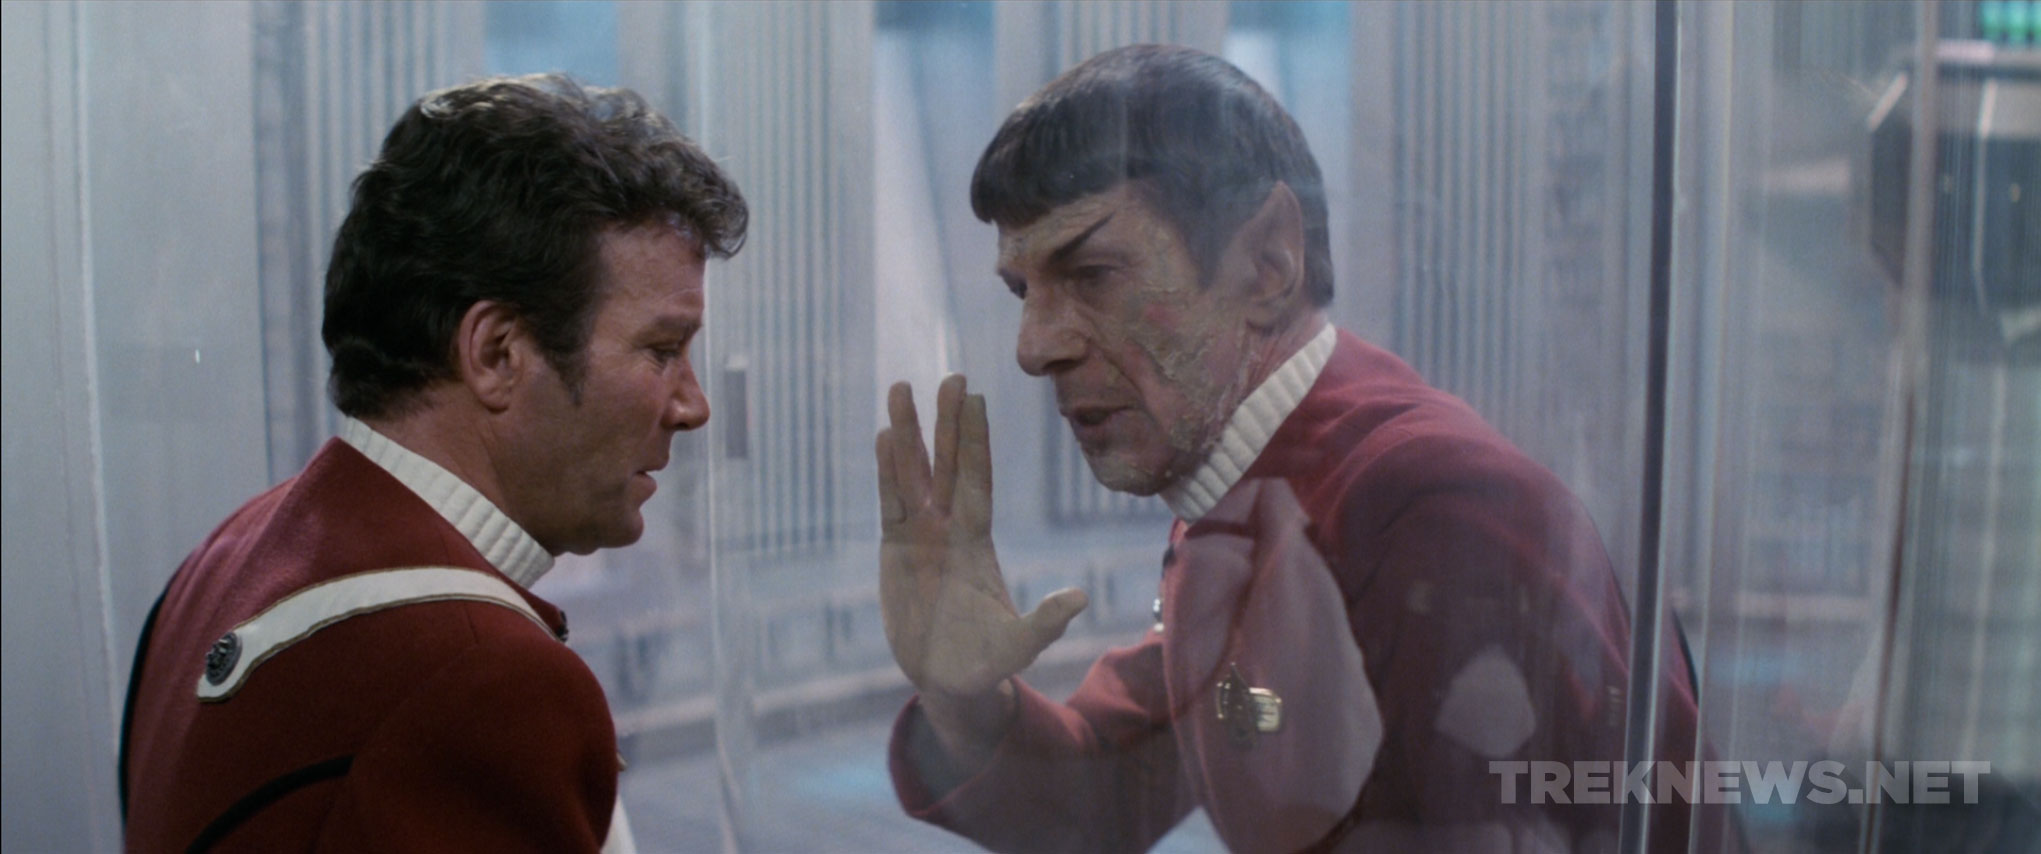 STAR TREK II: THE WRATH OF KHAN - The Director's Cut